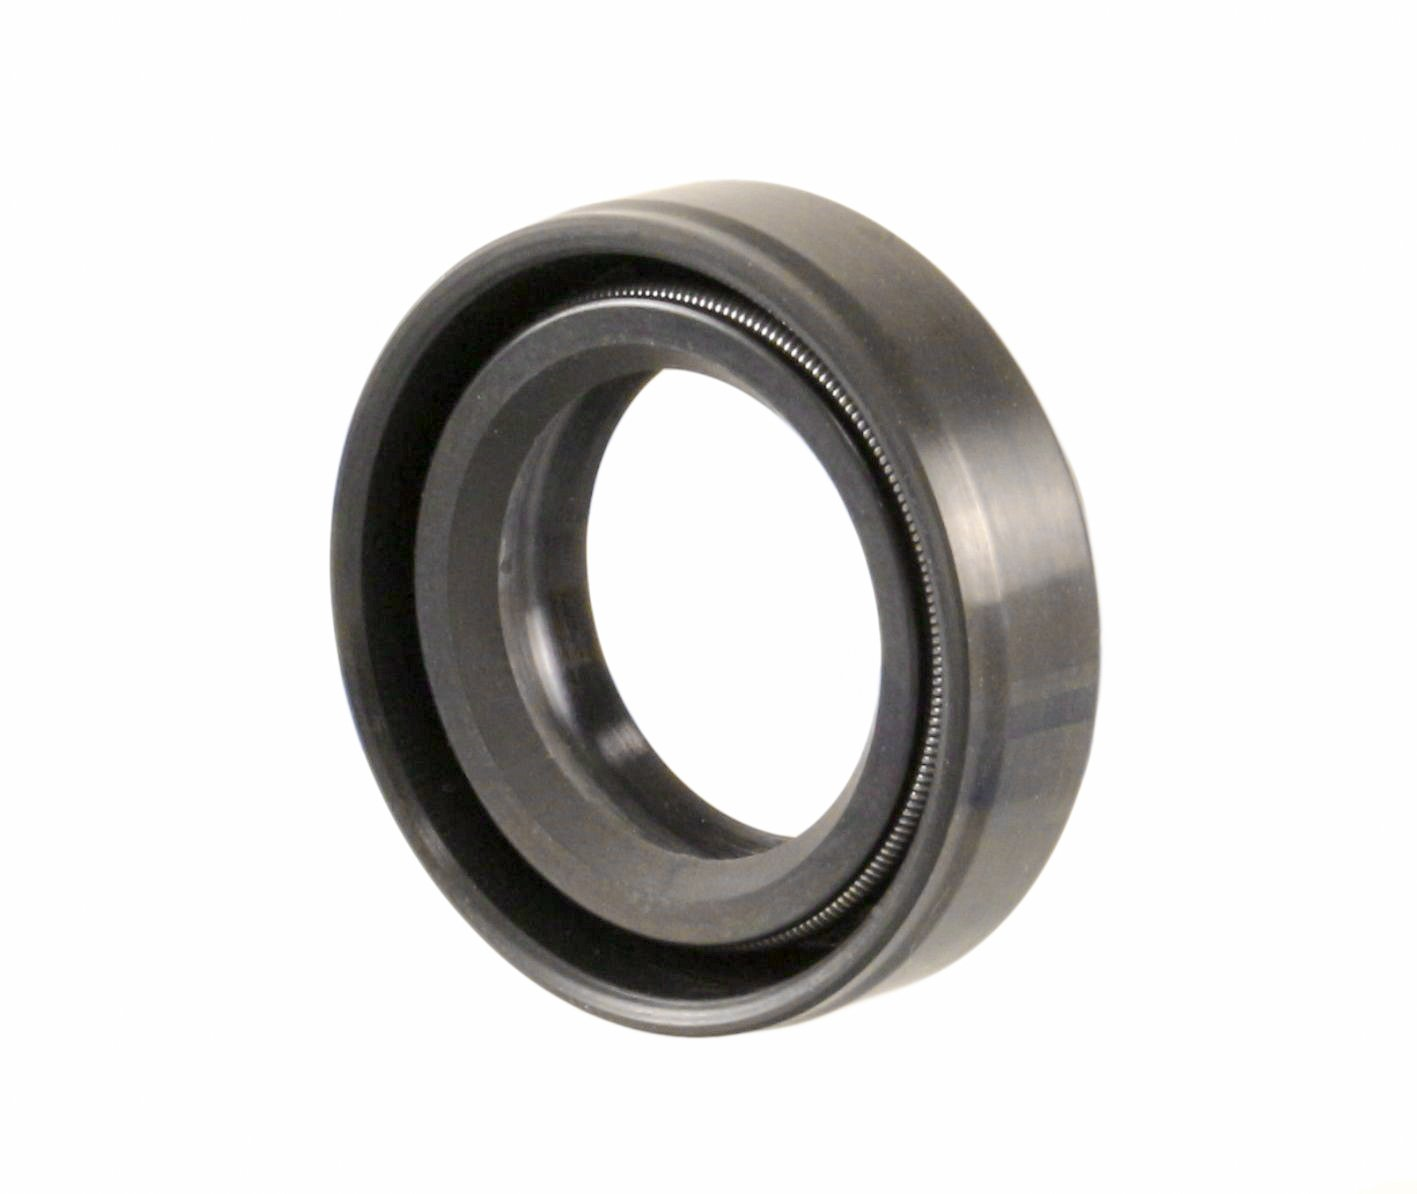 0.591x0.945x0.276 15mmX24mmX7mm Oil Seal Grease Seal TC |EAI Double Lip w//Garter Spring Single Metal Case w//Nitrile Rubber Coating 2 PCS Oil Seal 15X24X7